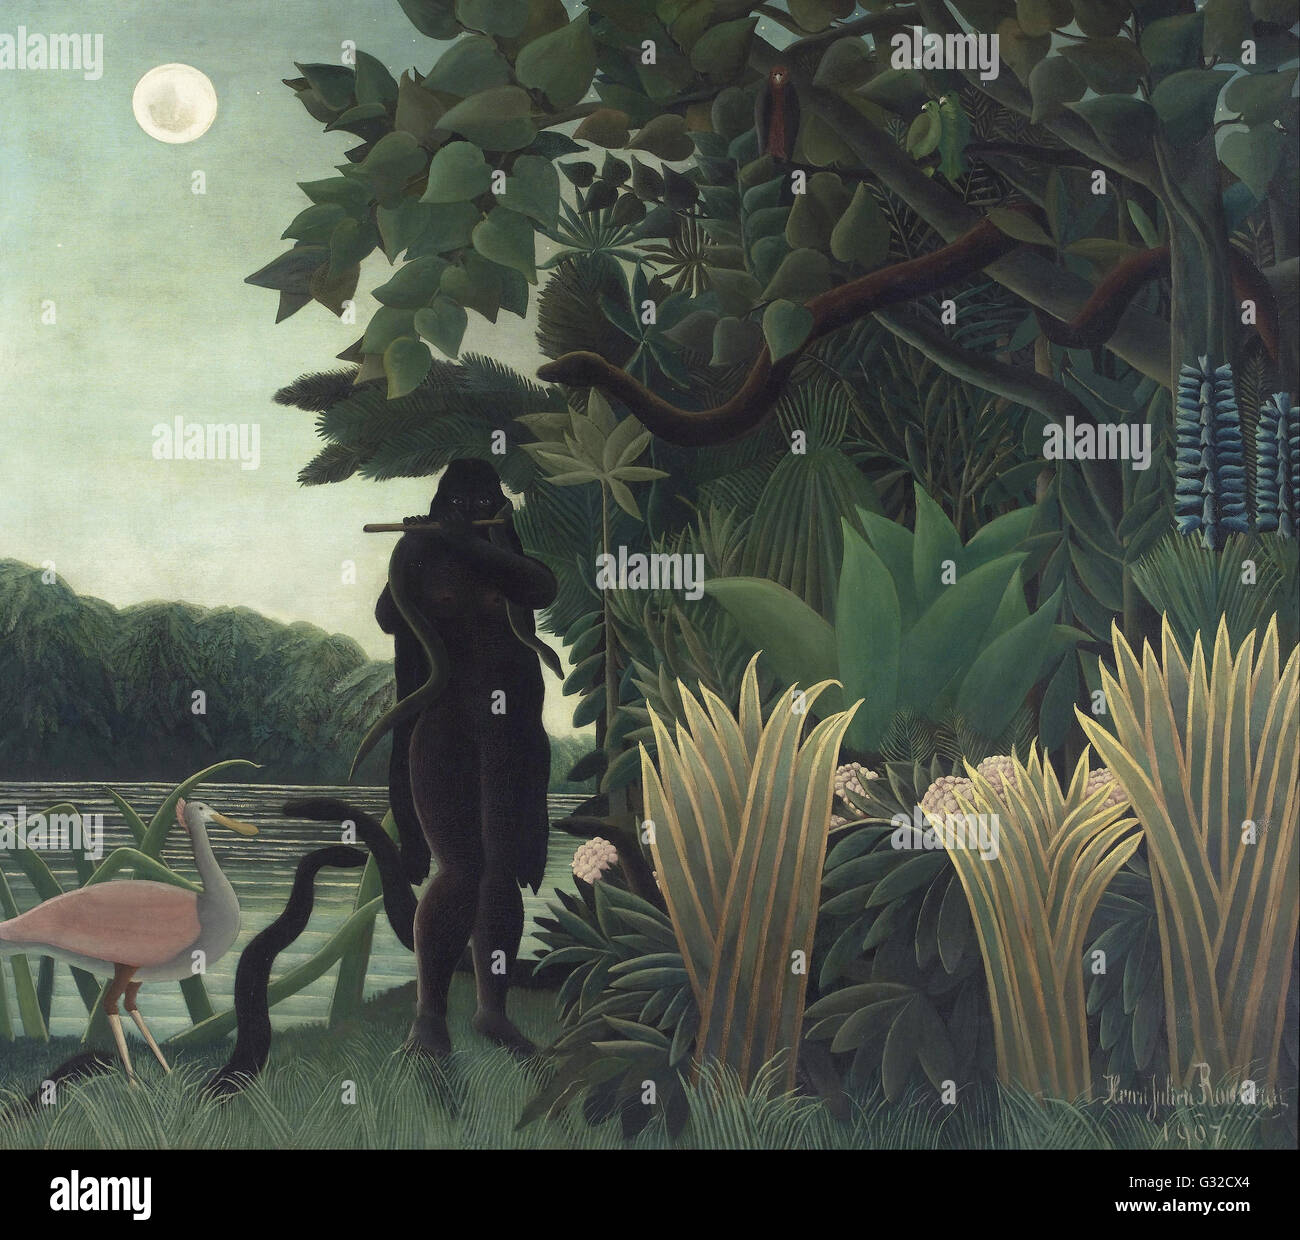 Henri Rousseau, known as le Douanier - The Snake Charmer   - Musée d'Orsay, Paris - Stock Image